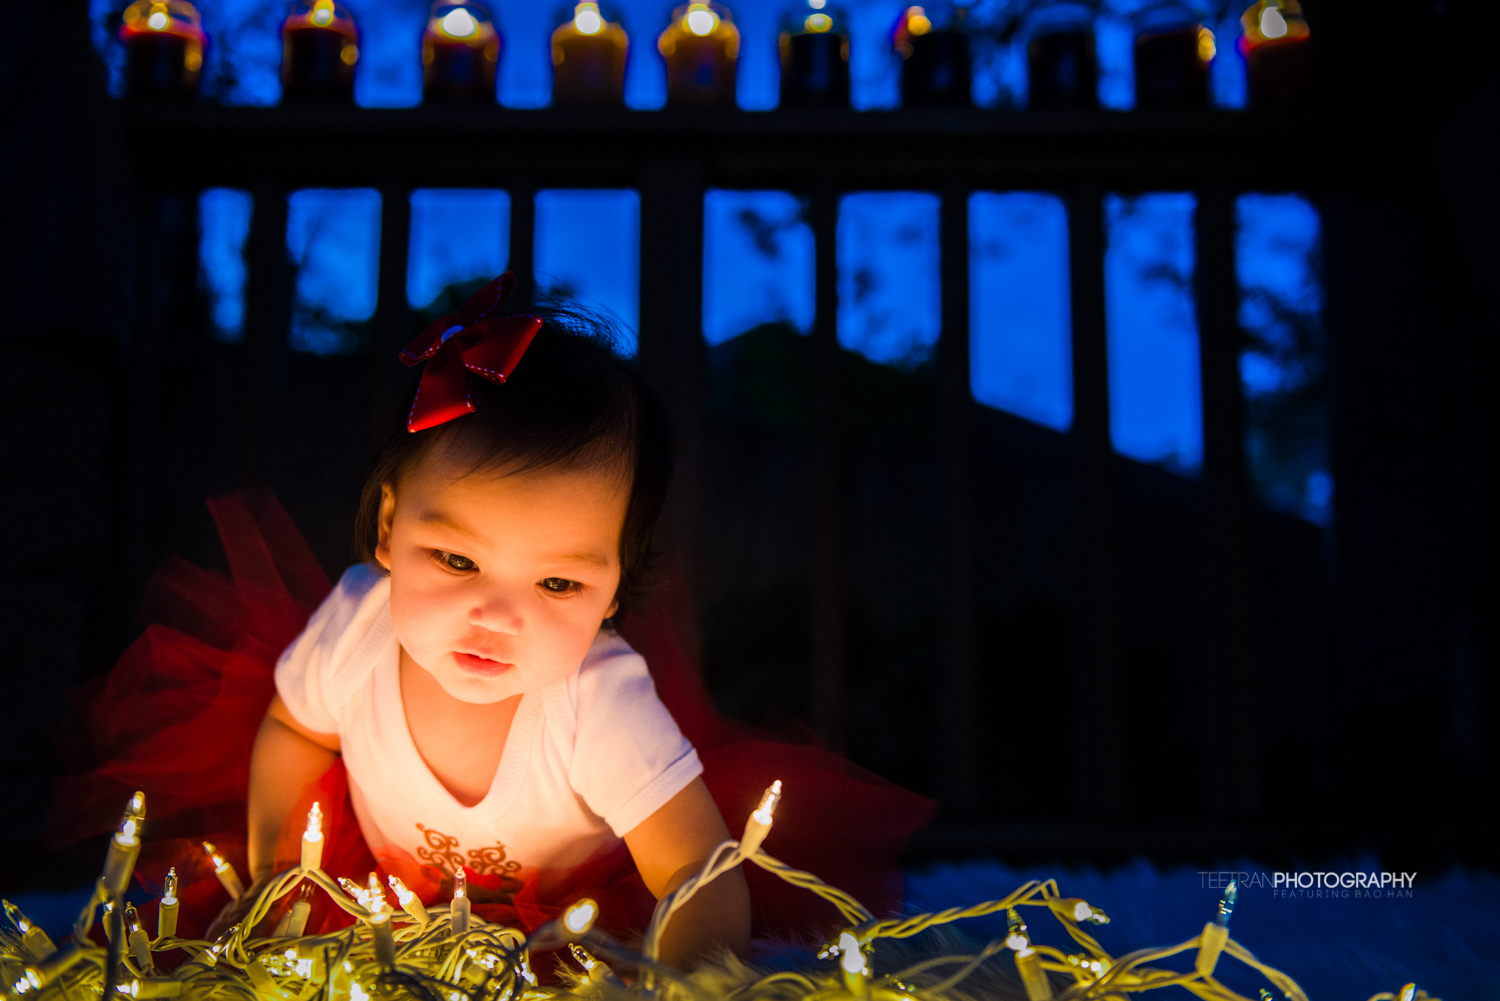 xmas-lights-children-1.jpg